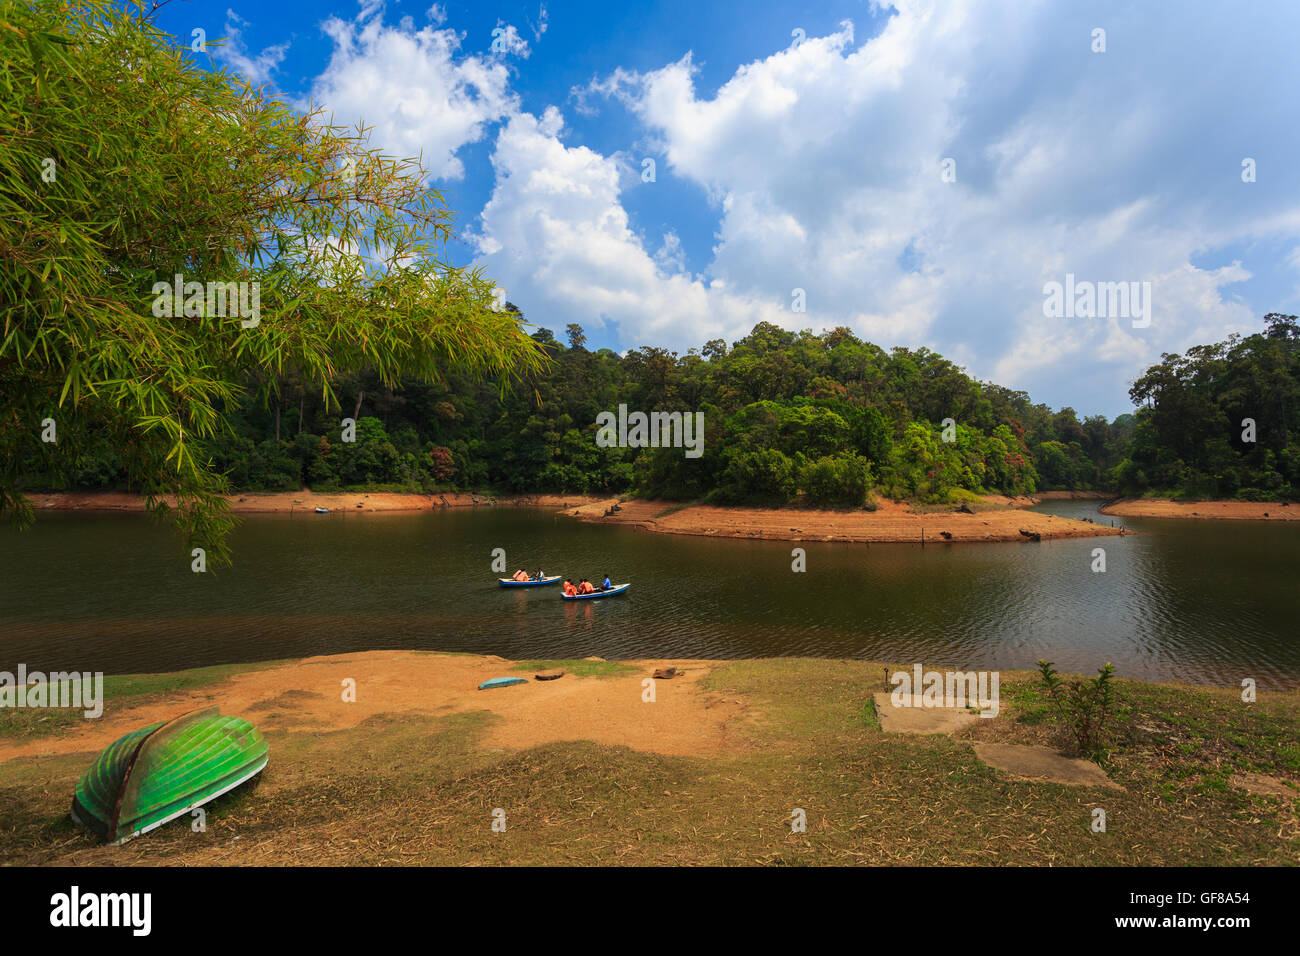 Boating at Gavi (near Periyar/Thekkady - Kerala) - Stock Image